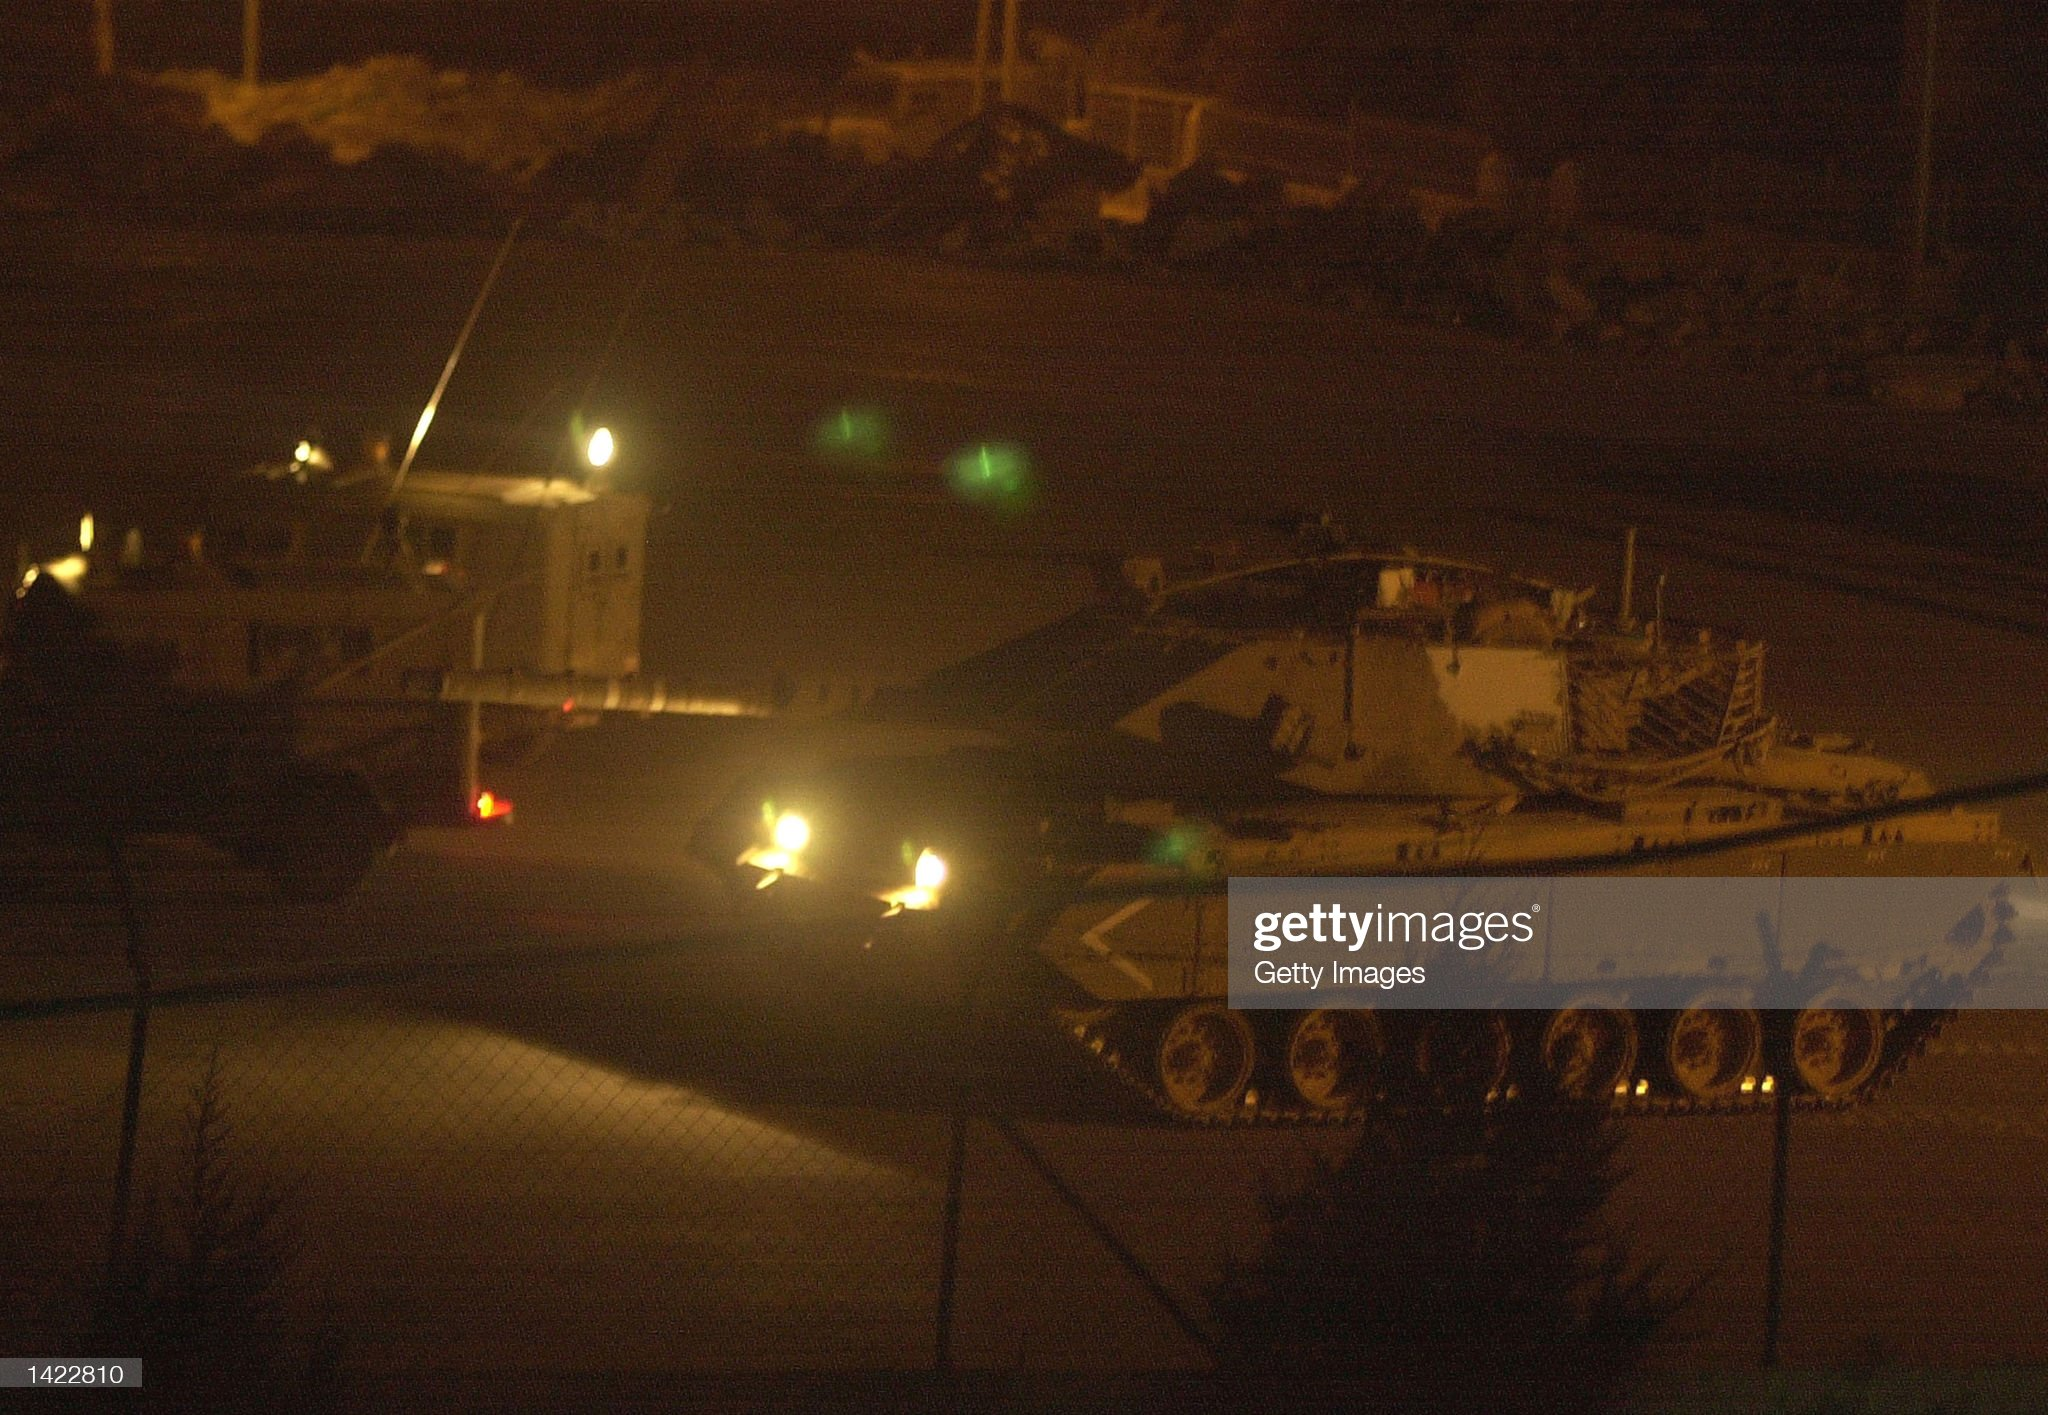 https://media.gettyimages.com/photos/israeli-army-vehicles-enter-palestinian-leader-yasser-arafats-19-picture-id1422810?s=2048x2048